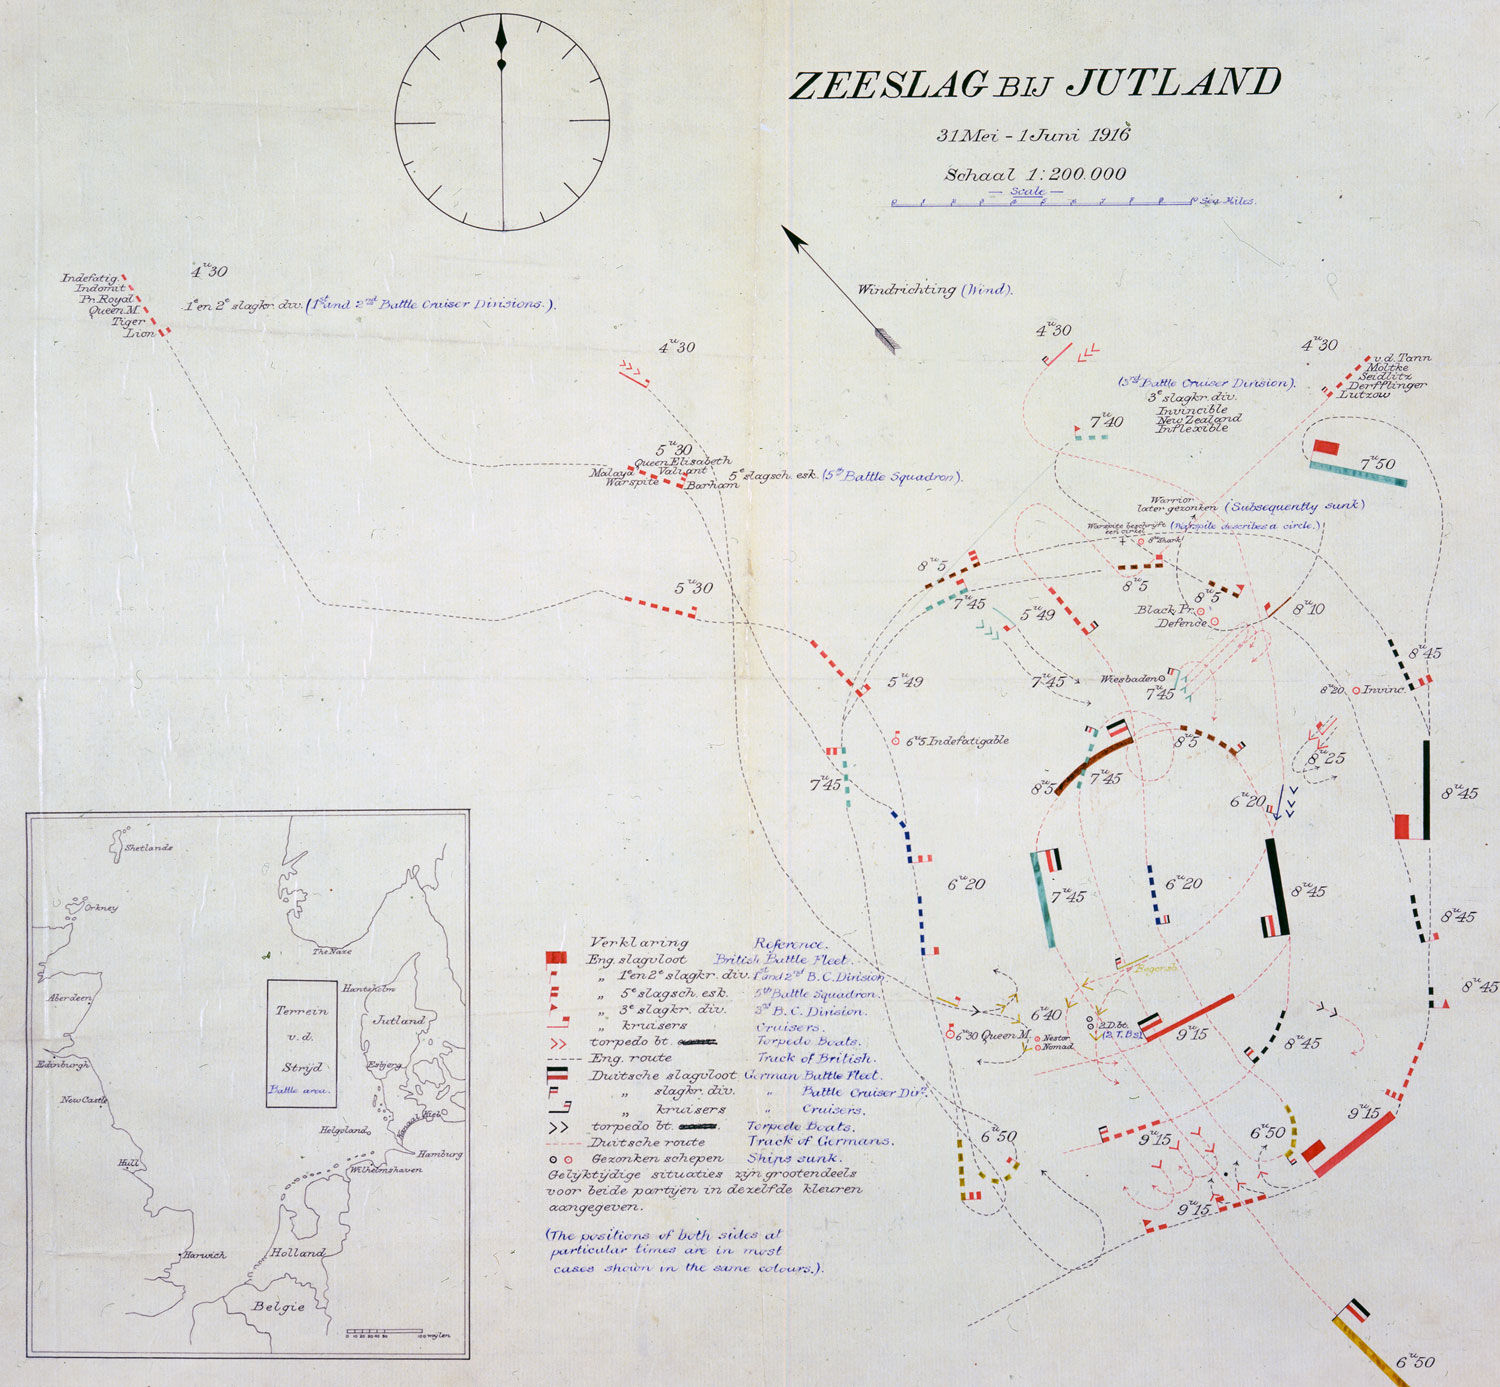 Jutland: Death at sea - The National Archives